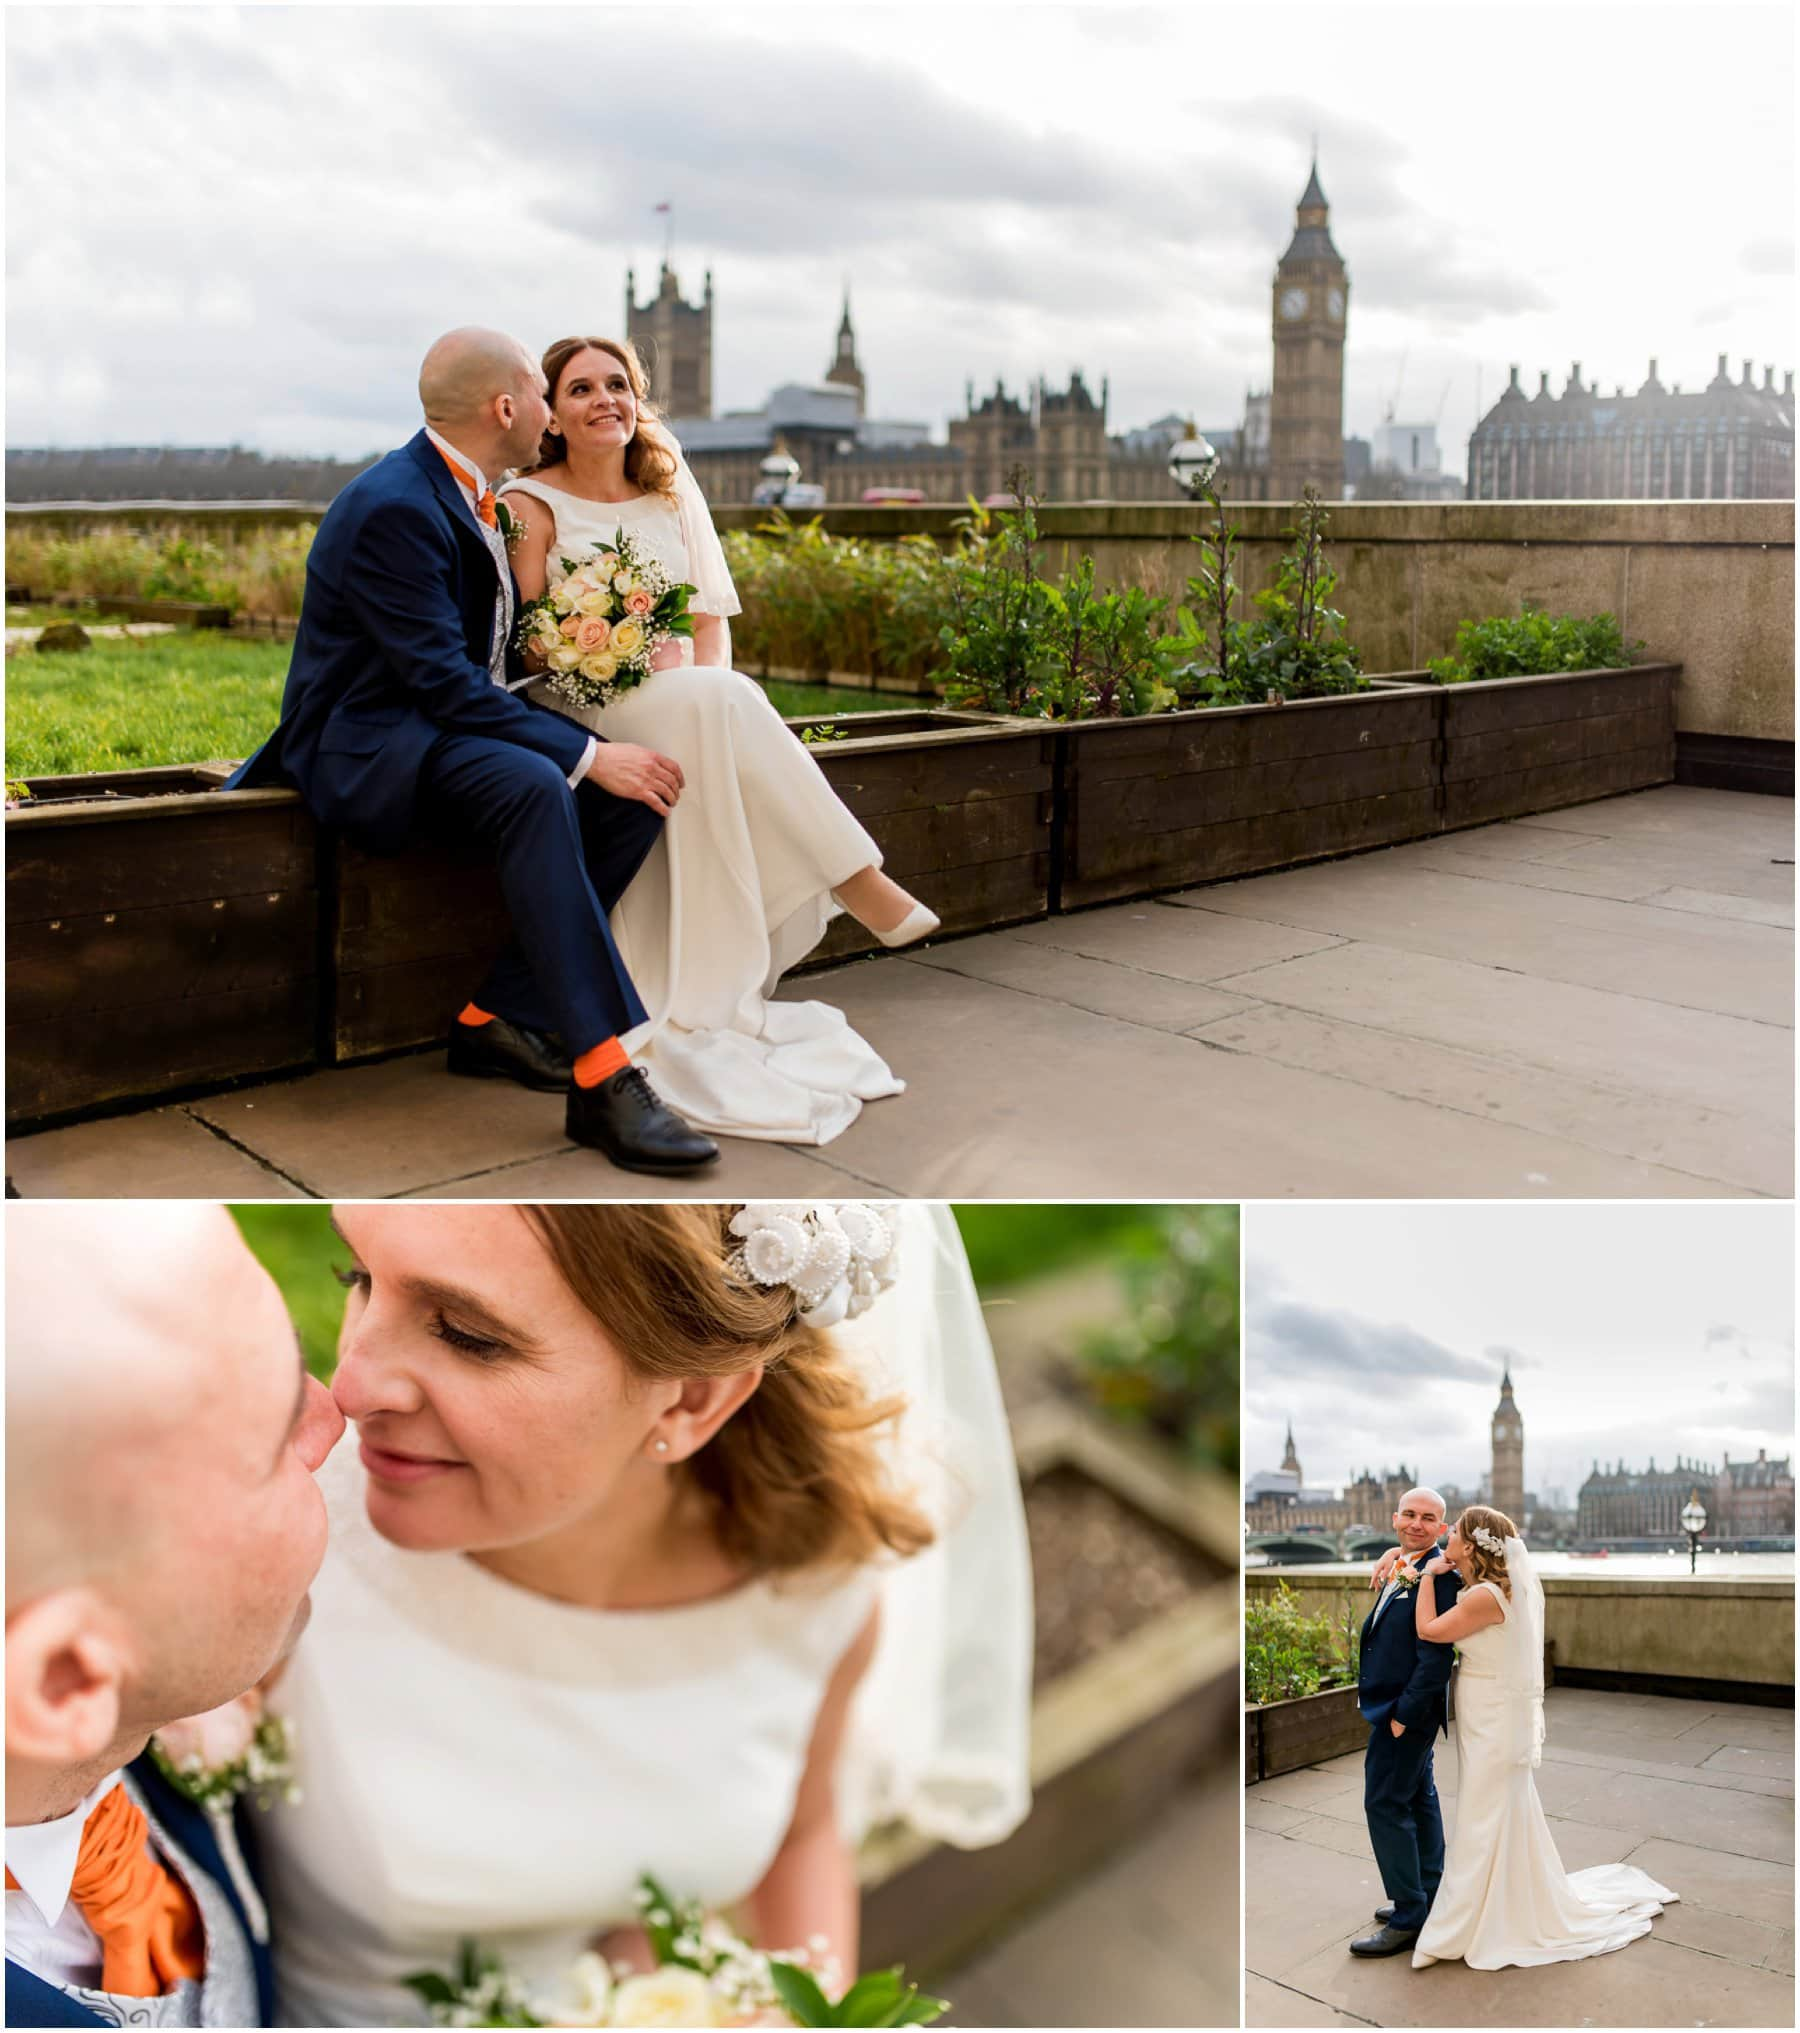 Cynthia and Jean's London wedding in Westminster at St George's Cathedral followed by a reception at the Marriot County Hall on Westminster Bride with Big Ben in the background. Photos by Lisa Carpenter Photography, London Wedding Photographer shooting cool, elegant and contemporary wedding photos.